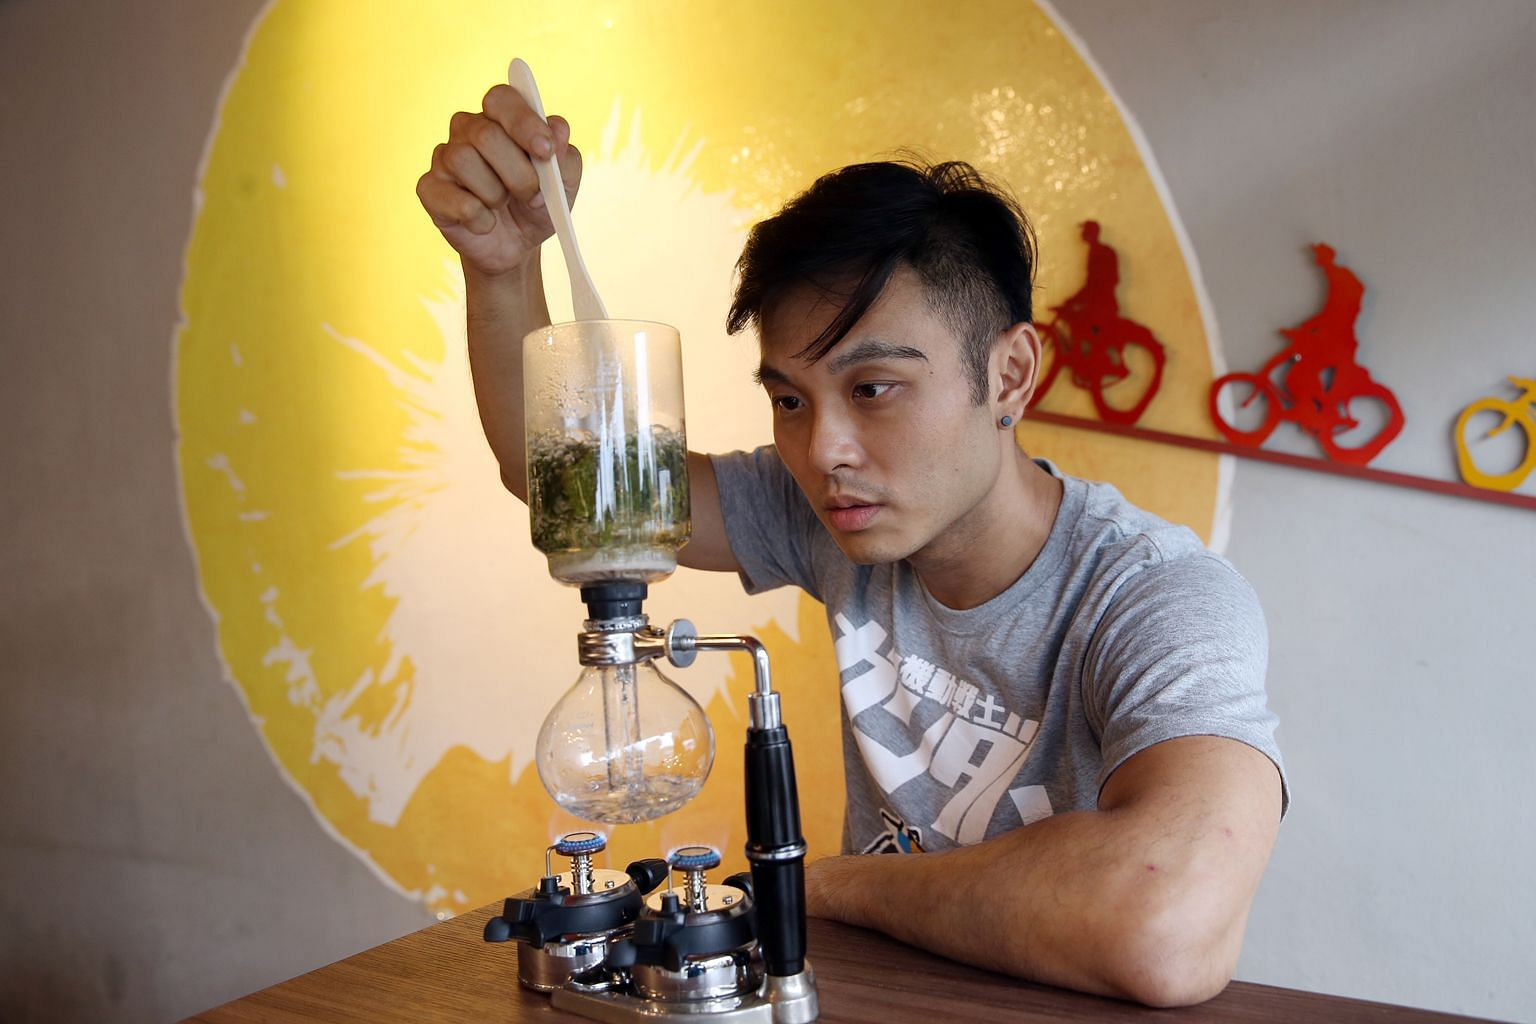 Sun Ray Cafe owner Dave Lim making tea in a coffee brewer. He is participating in the international Tea Masters Cup later this year.